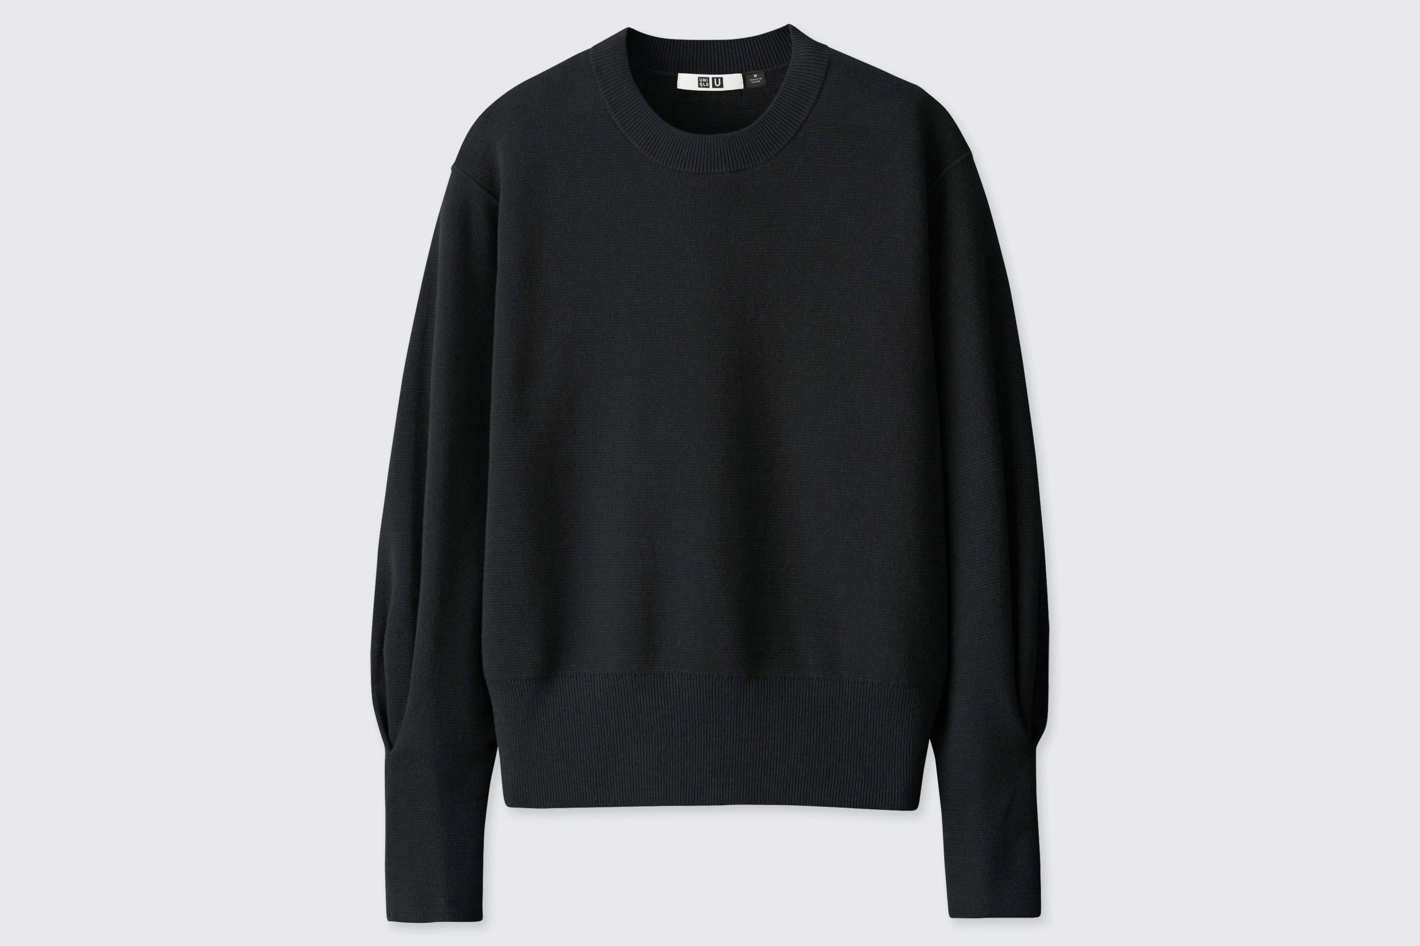 Uniqlo Women's U Milano Ribbed Relaxed Crew Neck Sweater